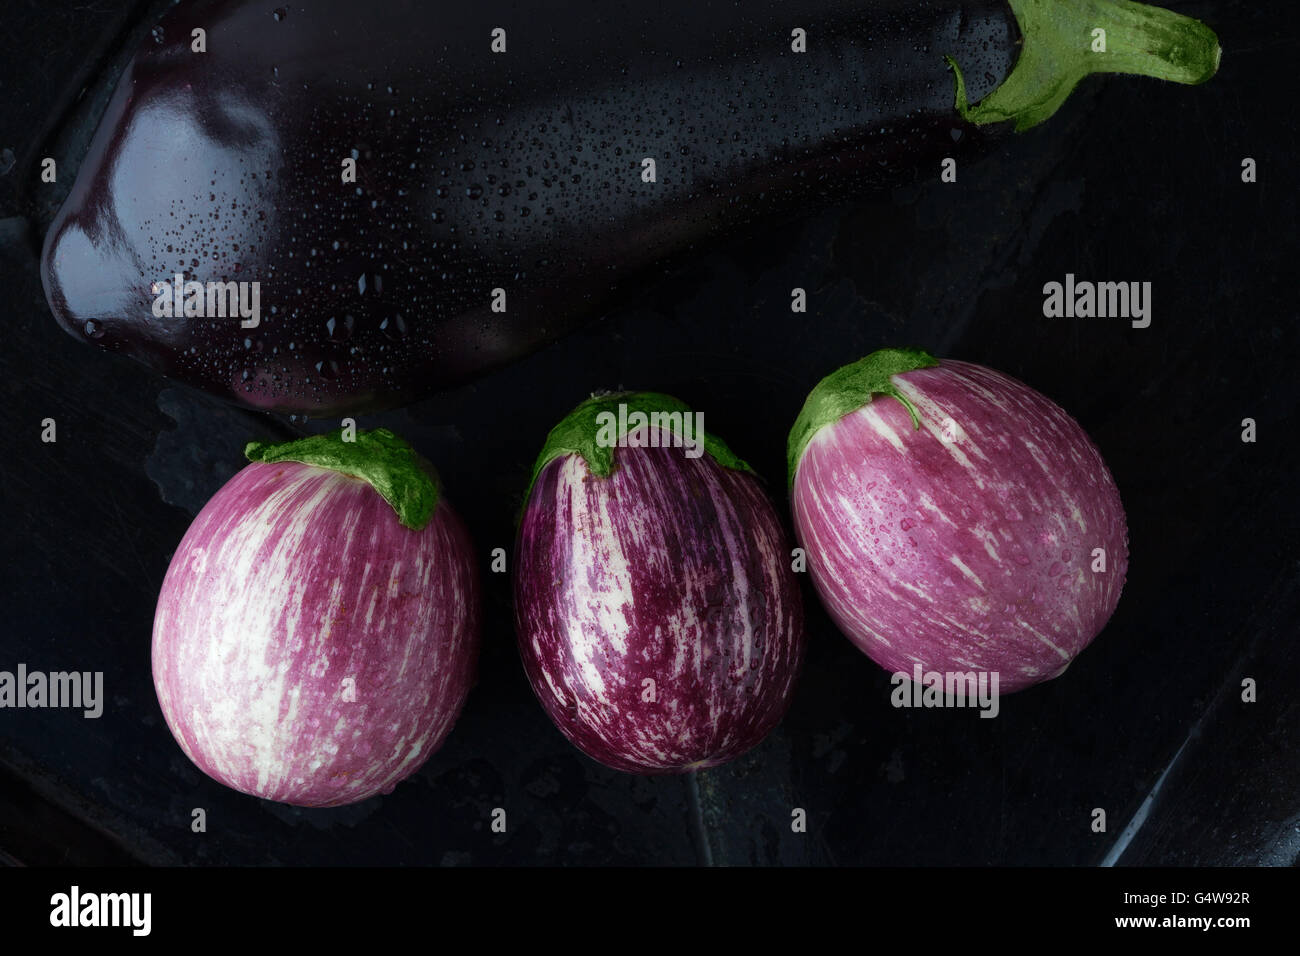 Wet black and purple striped eggplants closeup. Top view. - Stock Image